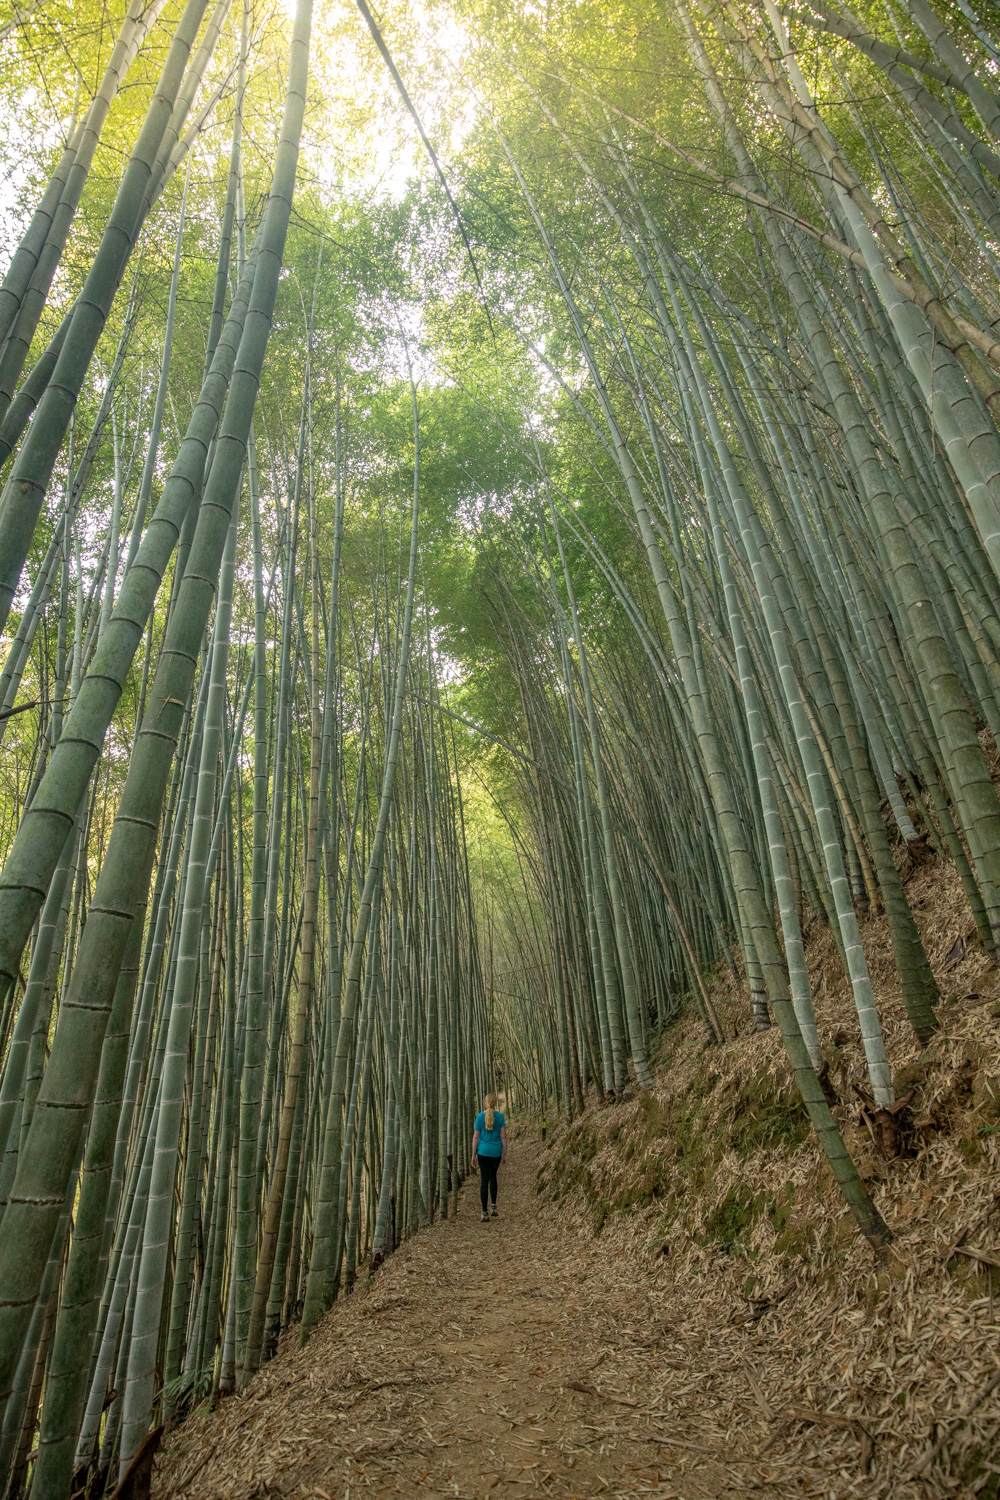 The bamboo forests of Fenrui Trail